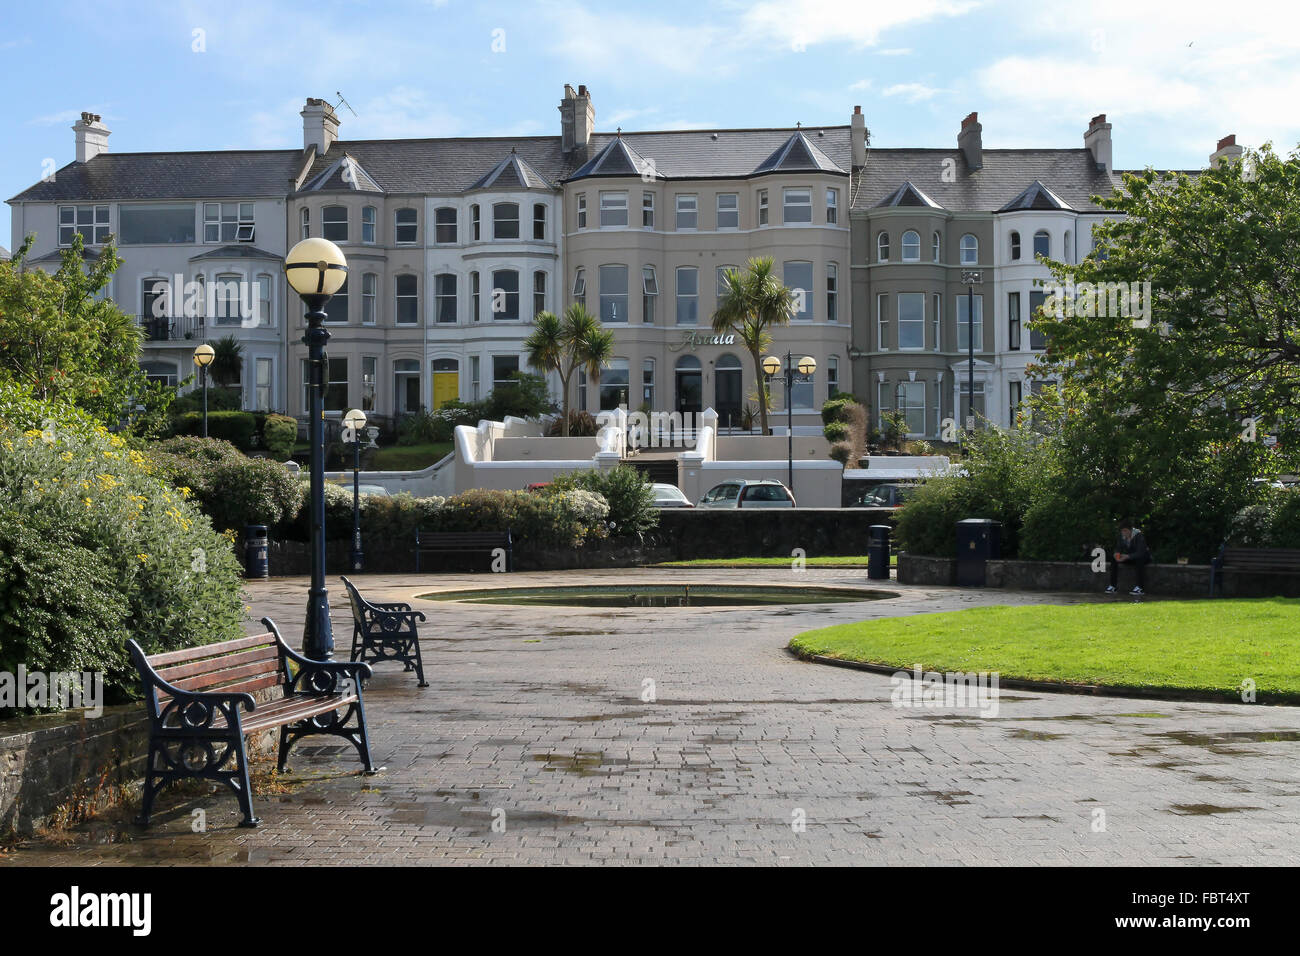 Seafront houses in Bangor, Co Down. - Stock Image